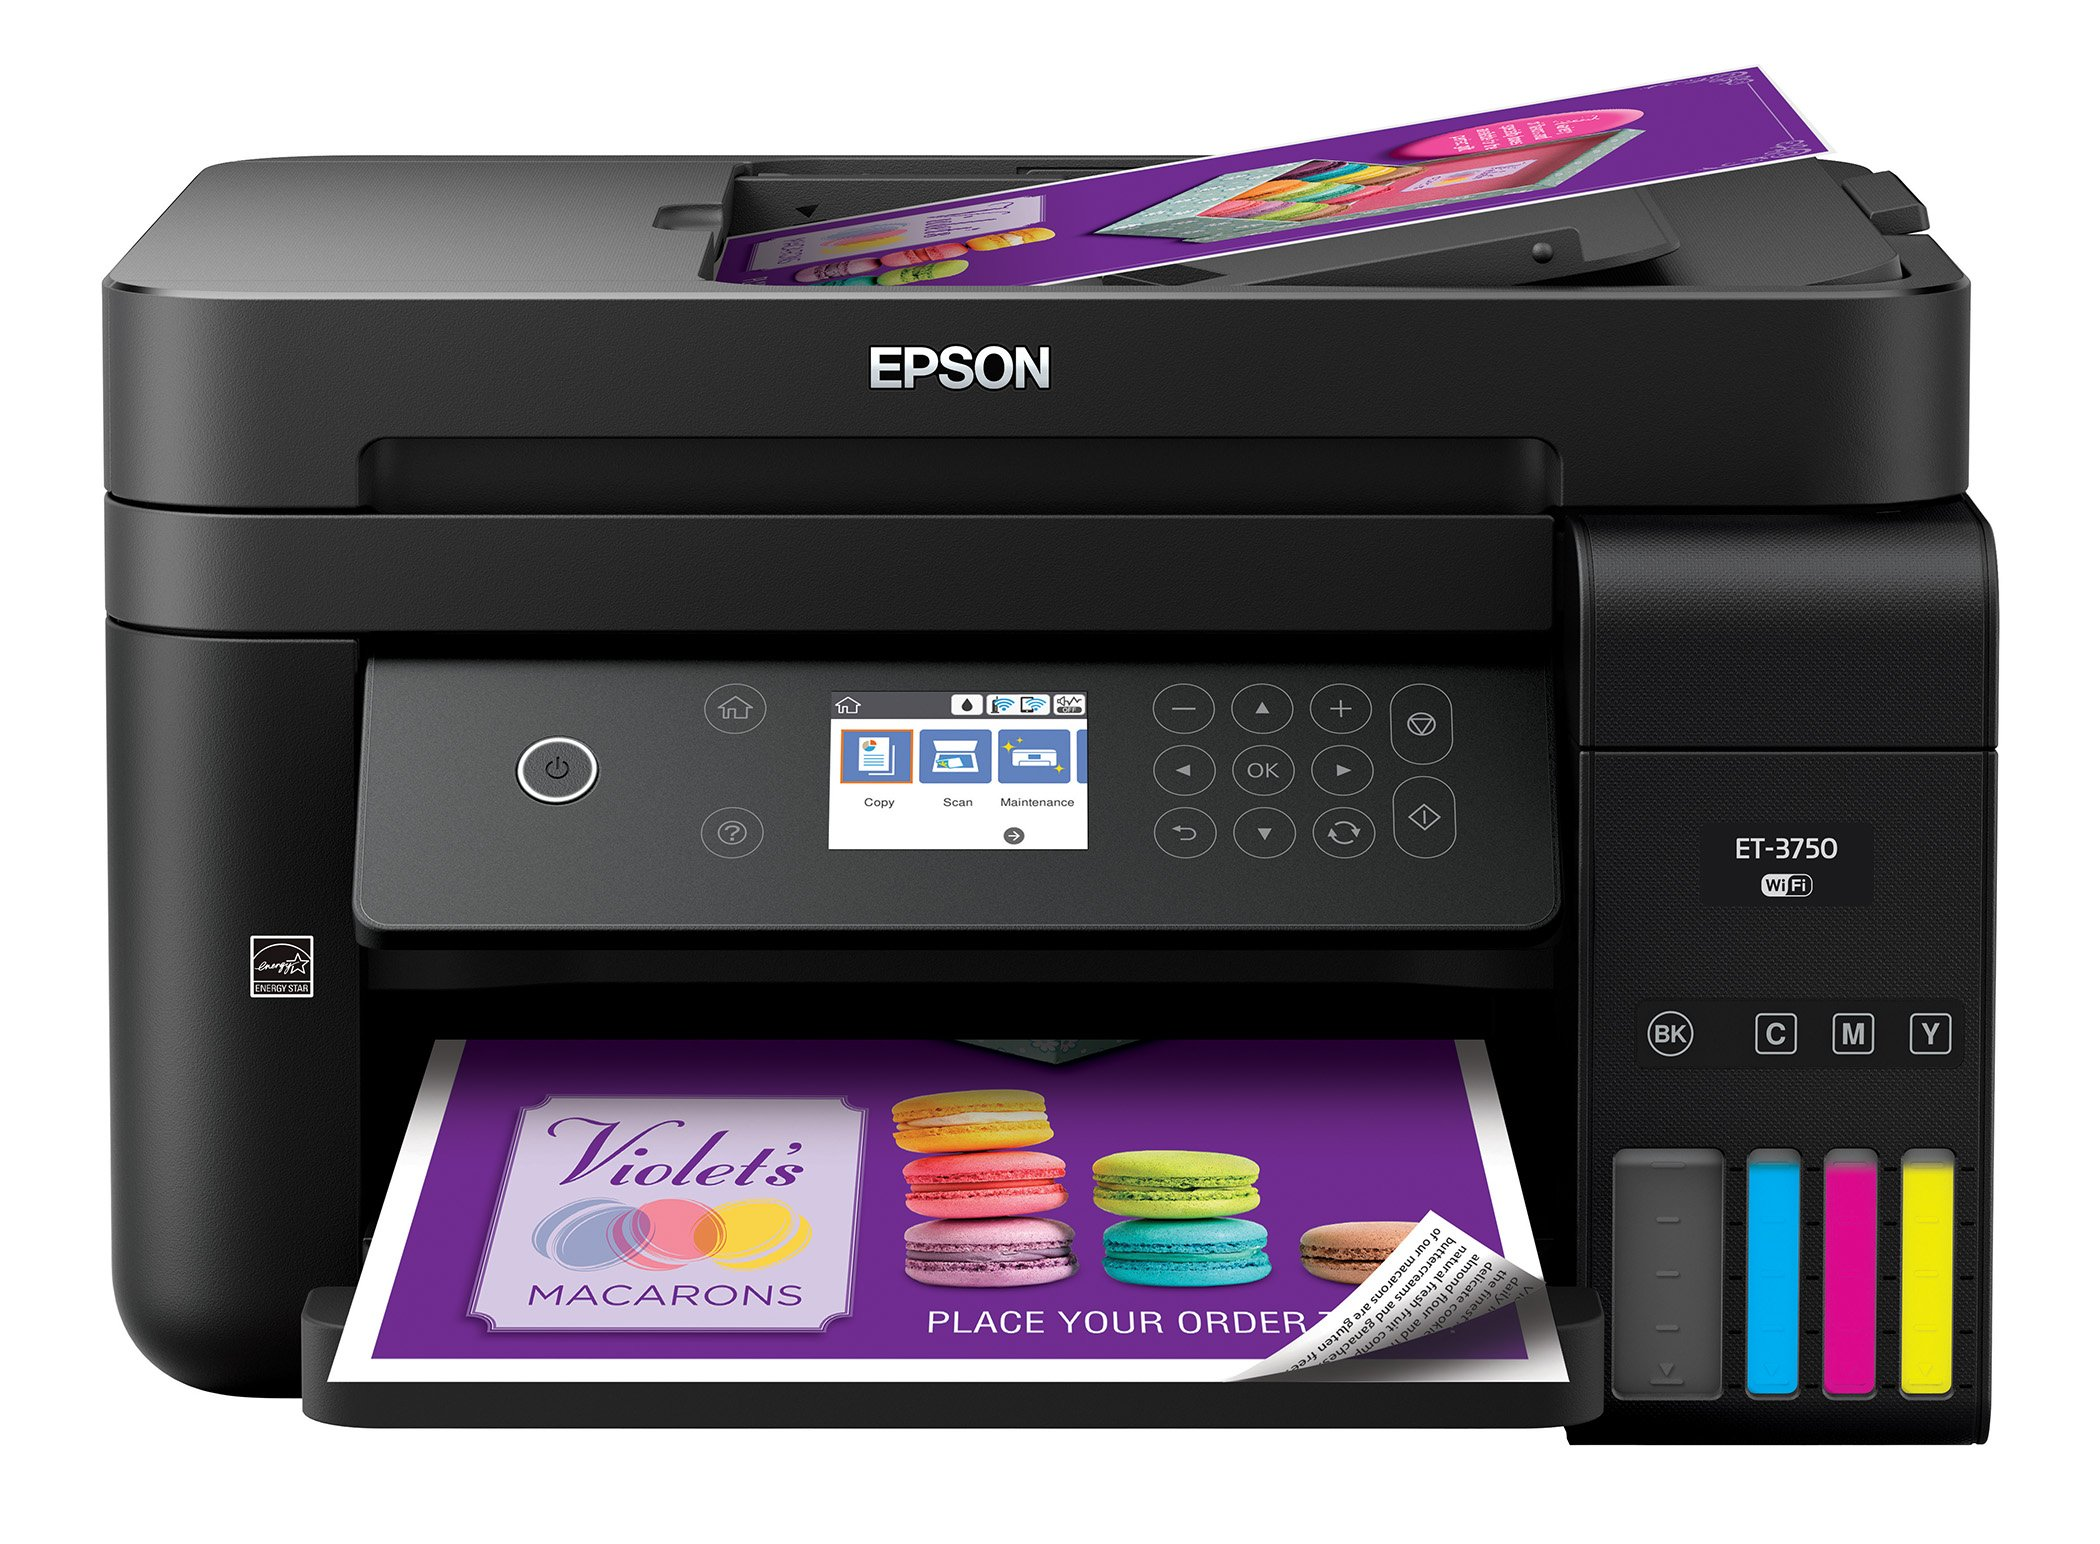 Epson Workforce ET-3750 EcoTank Wireless Color All-in-One Supertank Printer with Scanner, Copier and Ethernet (Renewed)